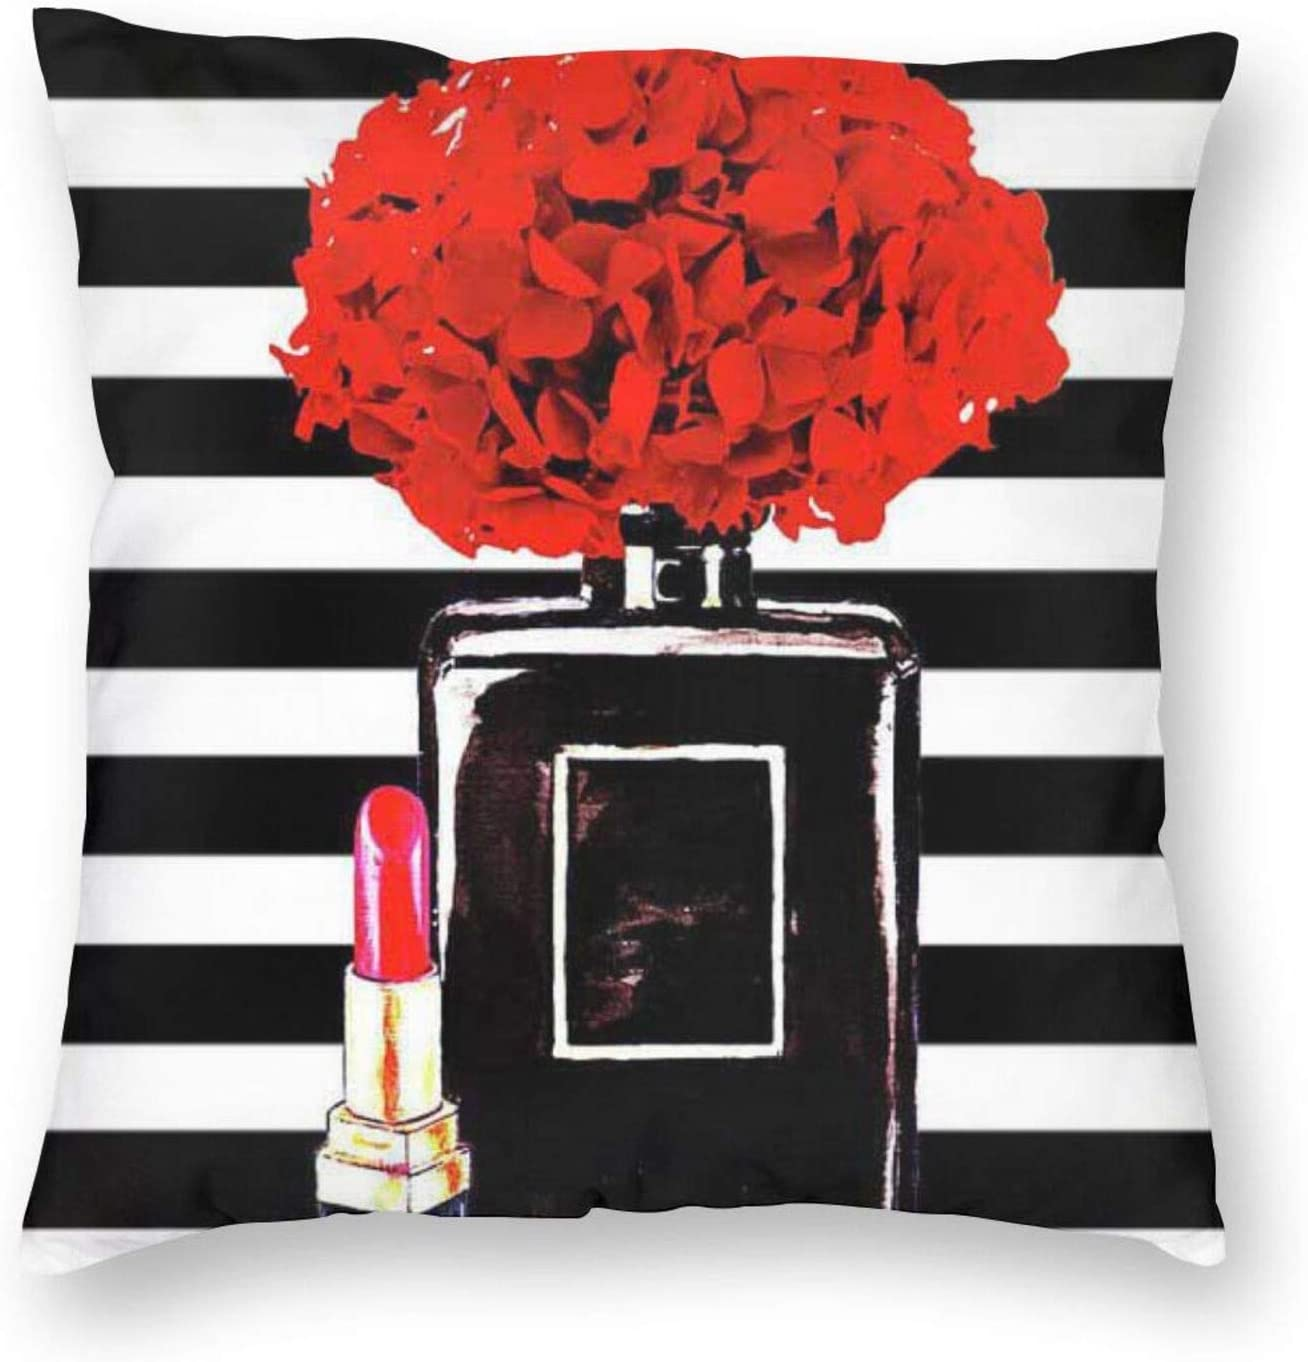 Yaateeh Women Makeup Decorative Throw Pillow Covers Black Perfume Bottle Lipstick Pillows Case Square Cushion Cover Standard Pillowcase for Sofa Couch Bedroom Patio 18x18 Inch